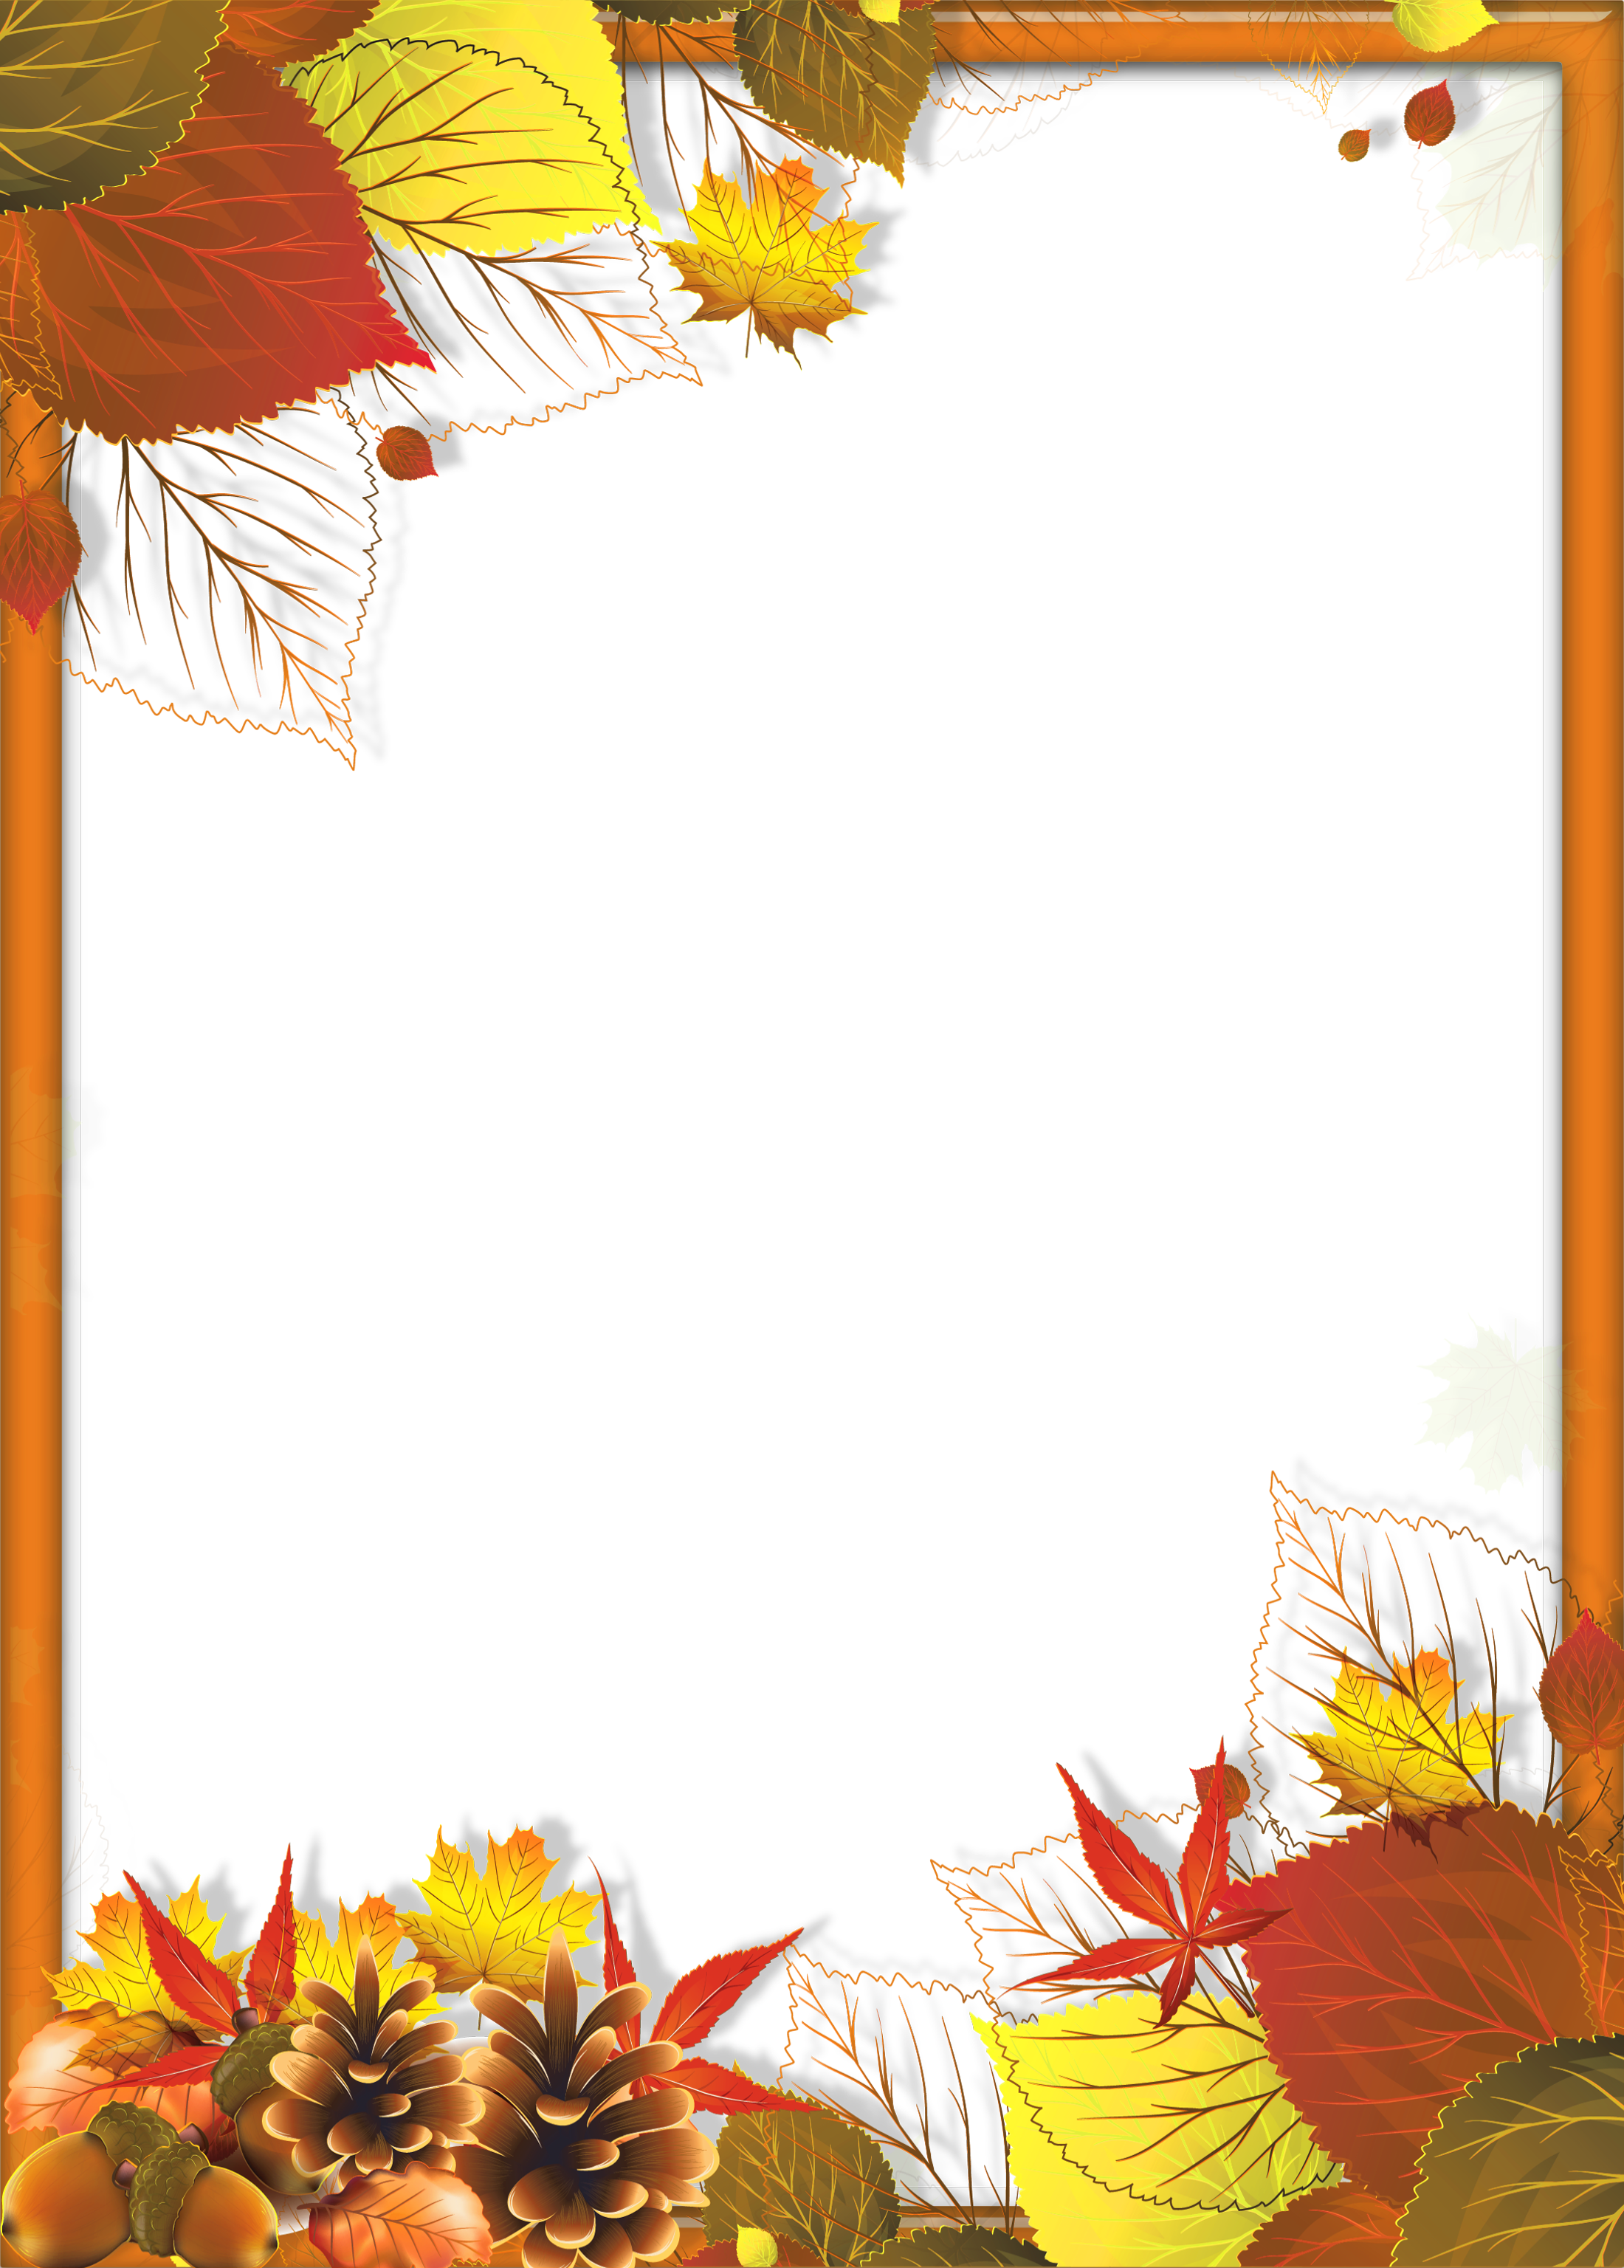 Transparent Fall PNG Frame with Leaves.